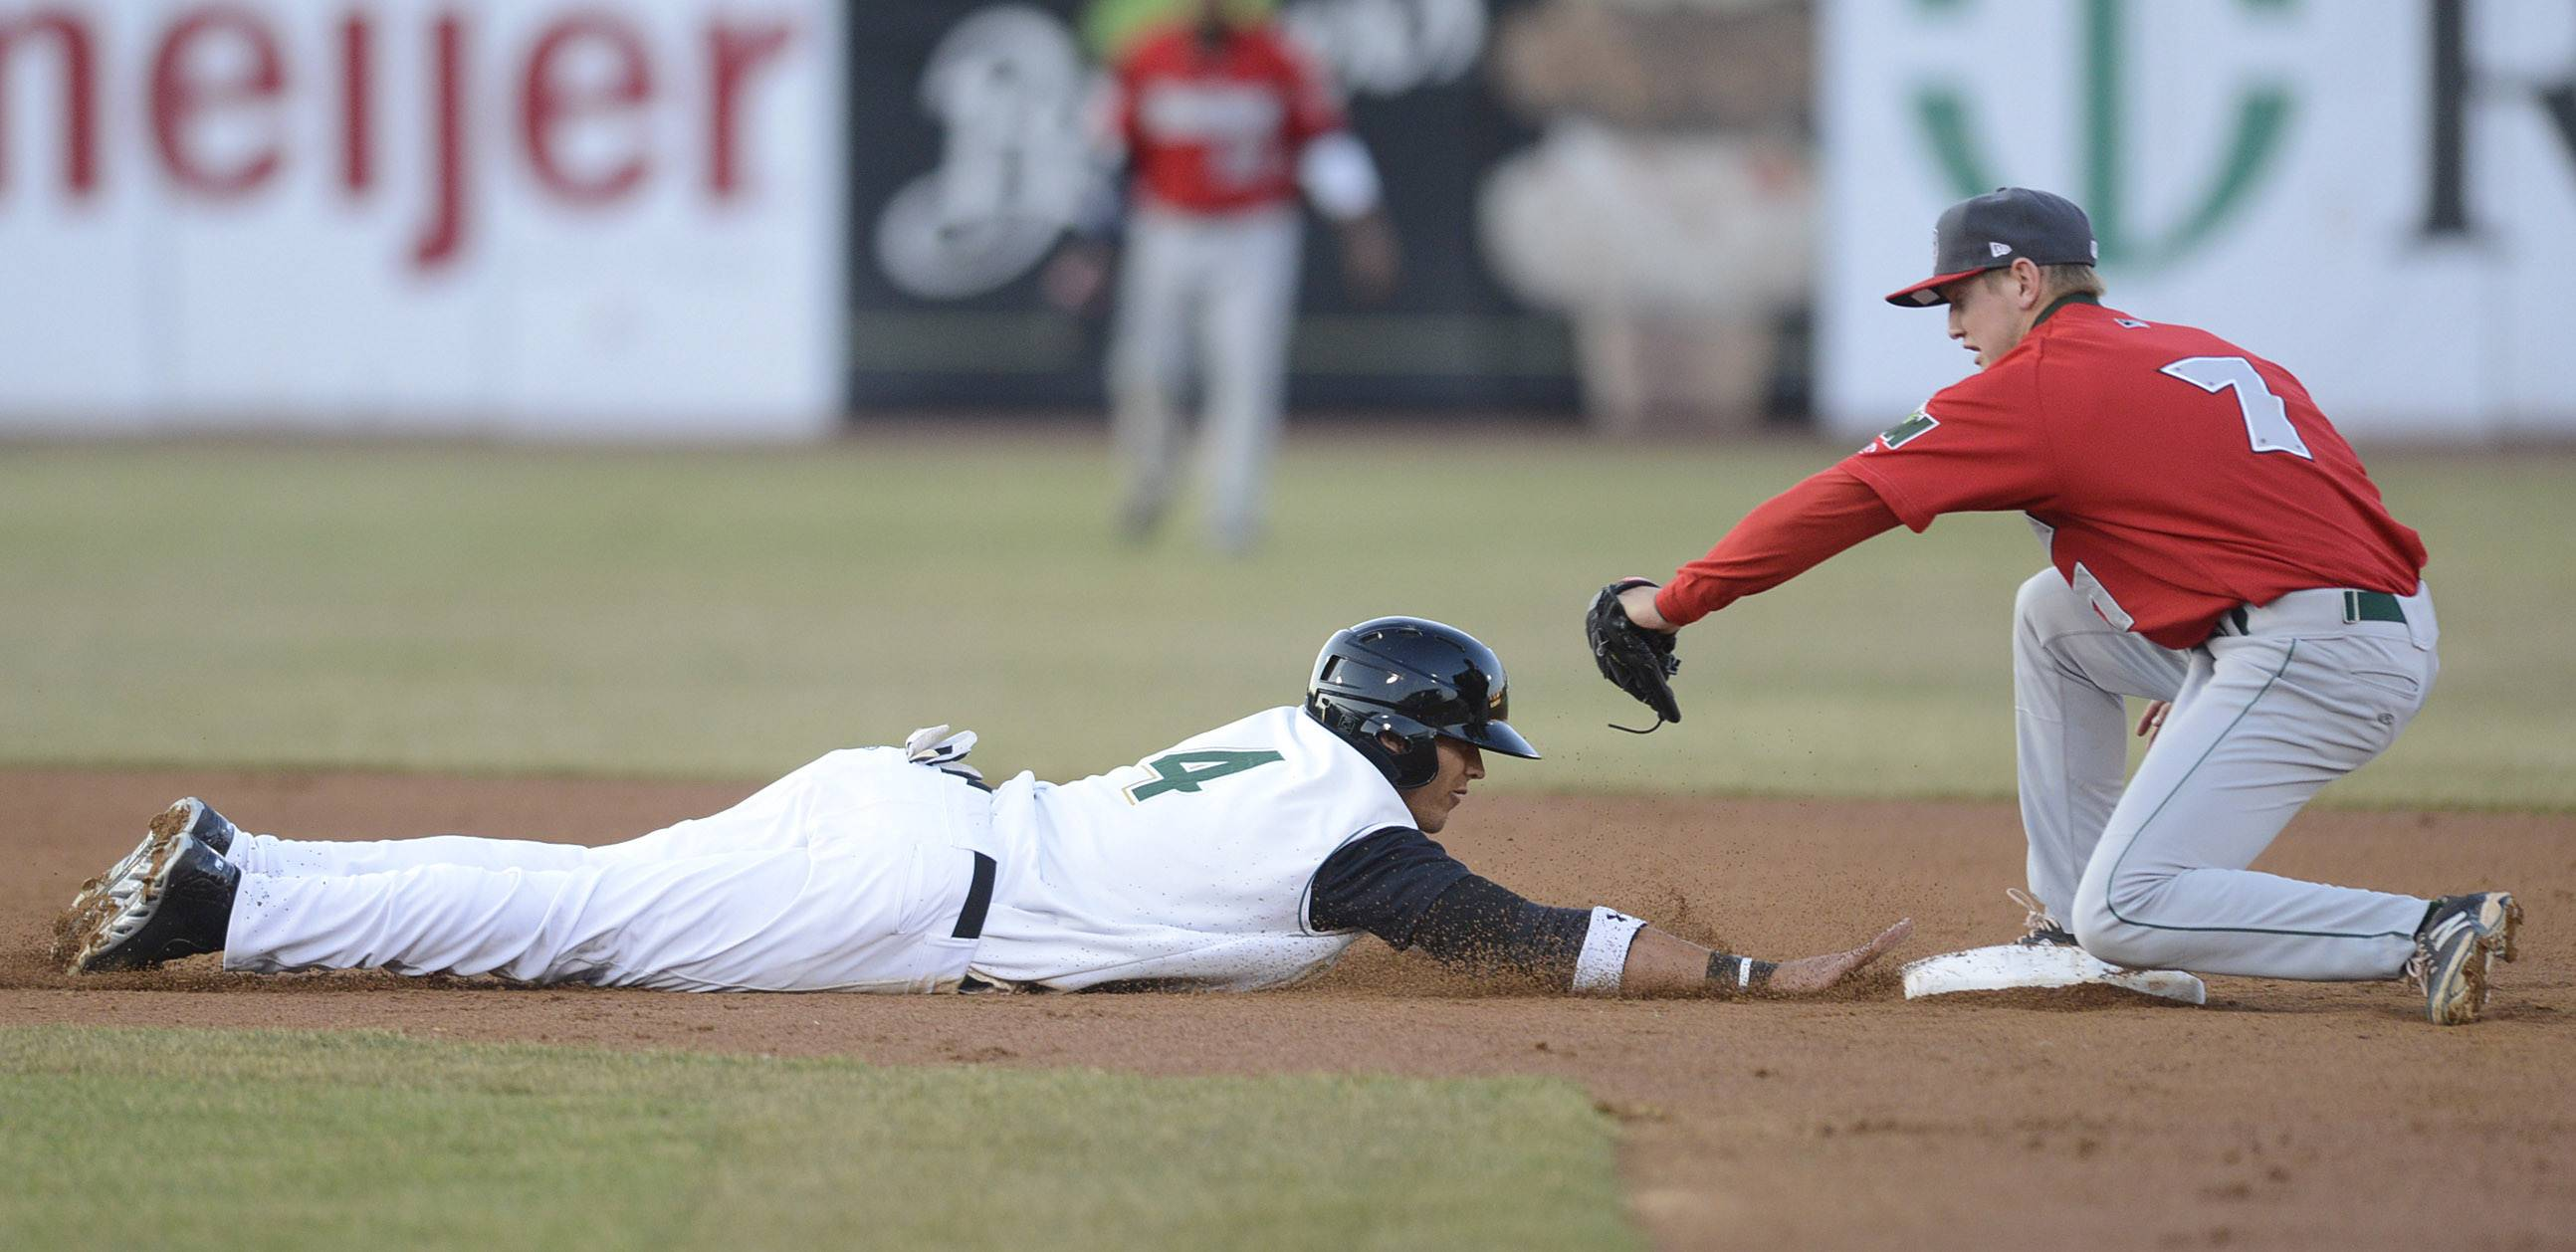 Kane County Cougars center fielder Jake Hannemann is safe at second base from Fort Wayne TinCaps' Josh VanMeter in the second inning.